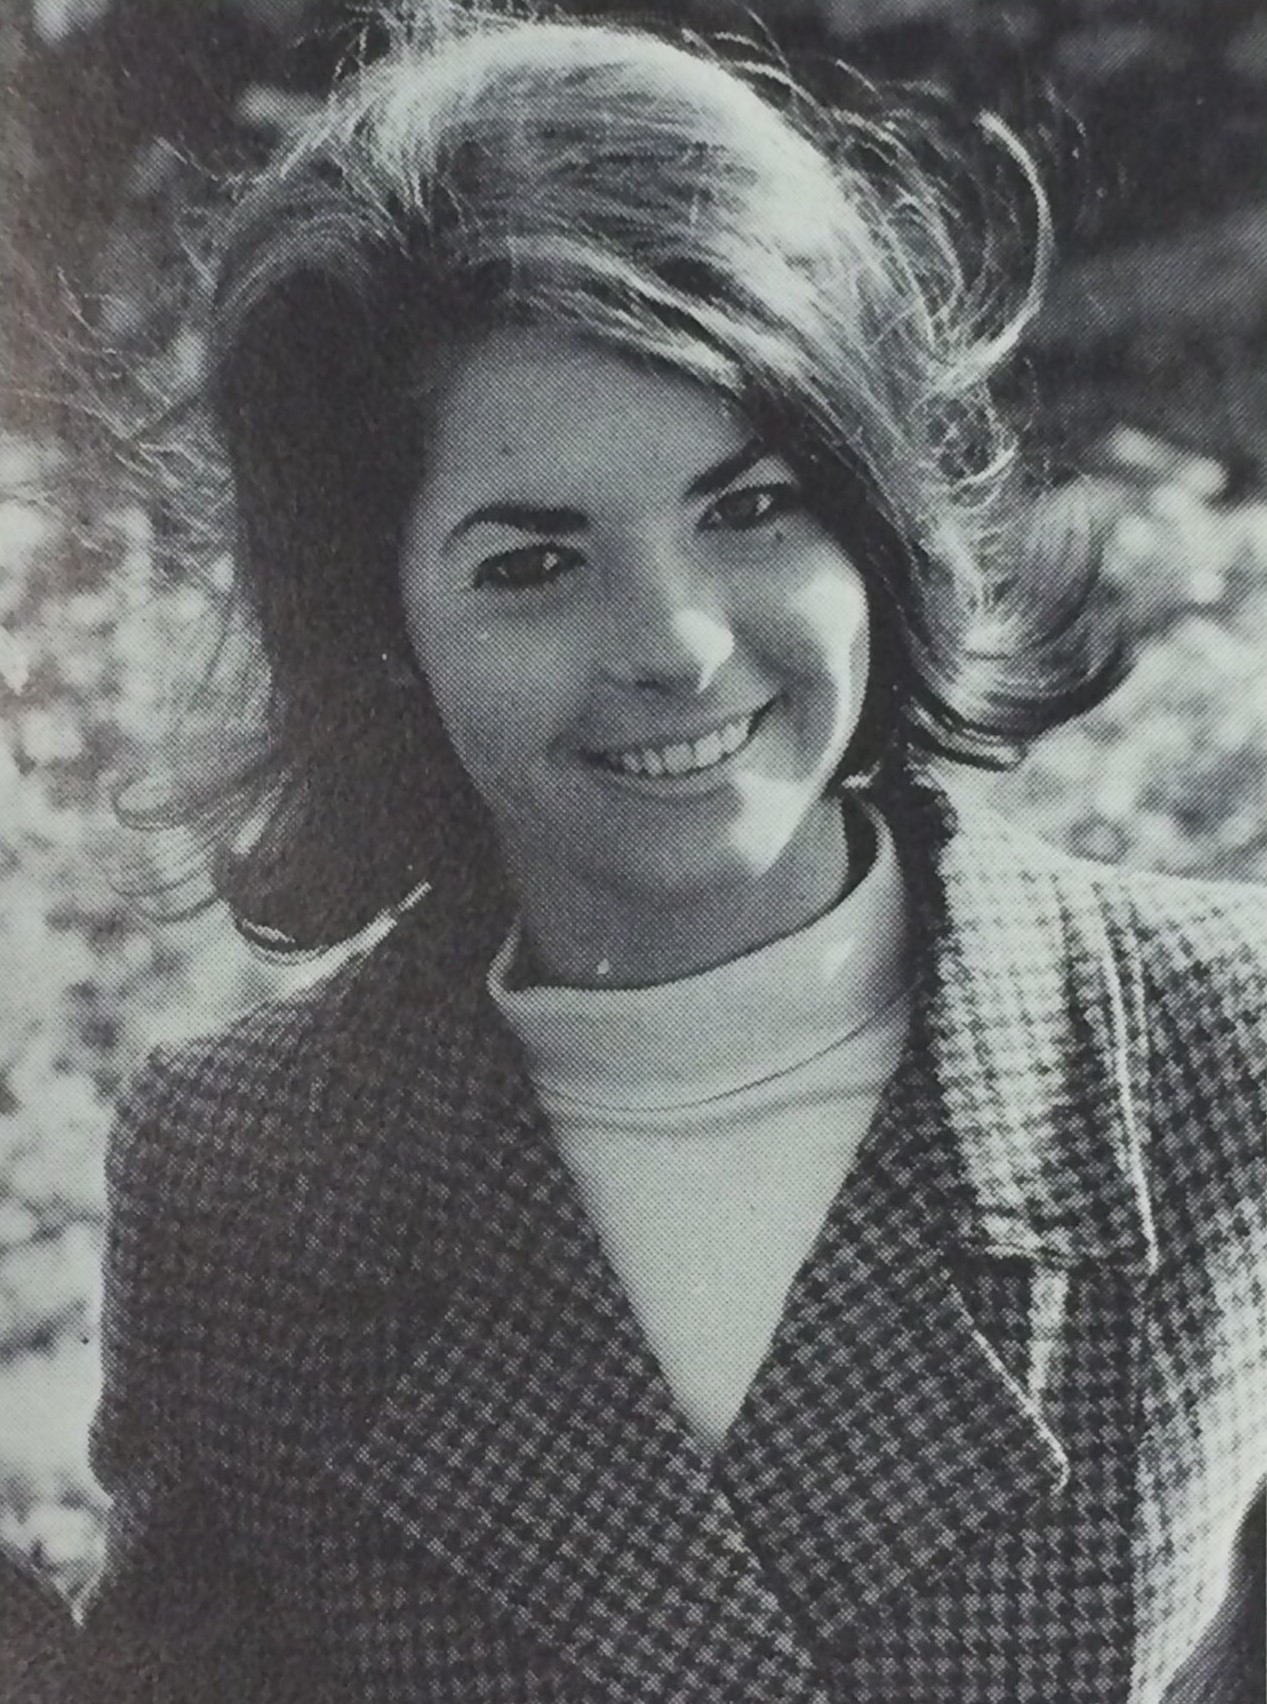 Lynn's Senior Photo in the 1968 Yearbook